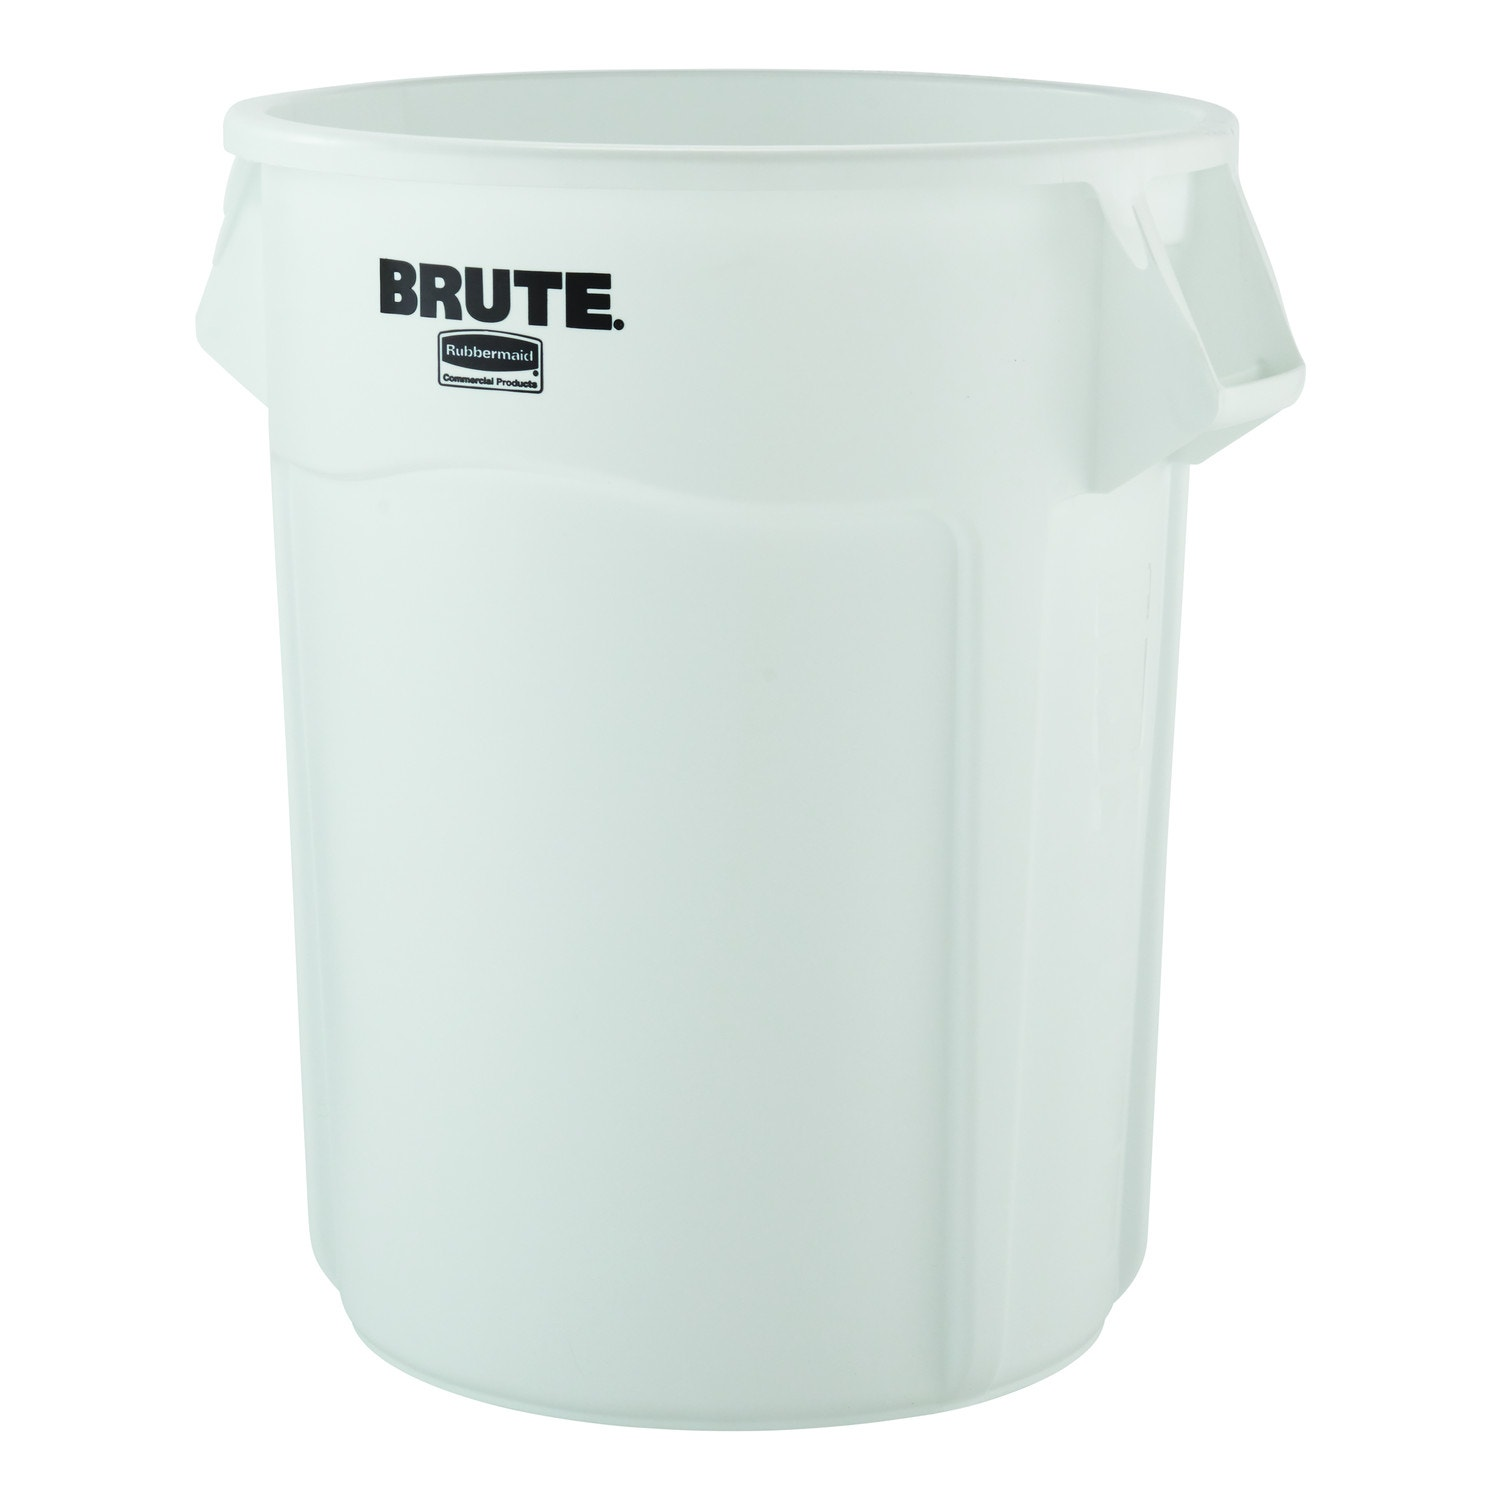 No Lid Rubbermaid Commercial Products Brute Garbage 32-Gallon Gal Bin Trash Can